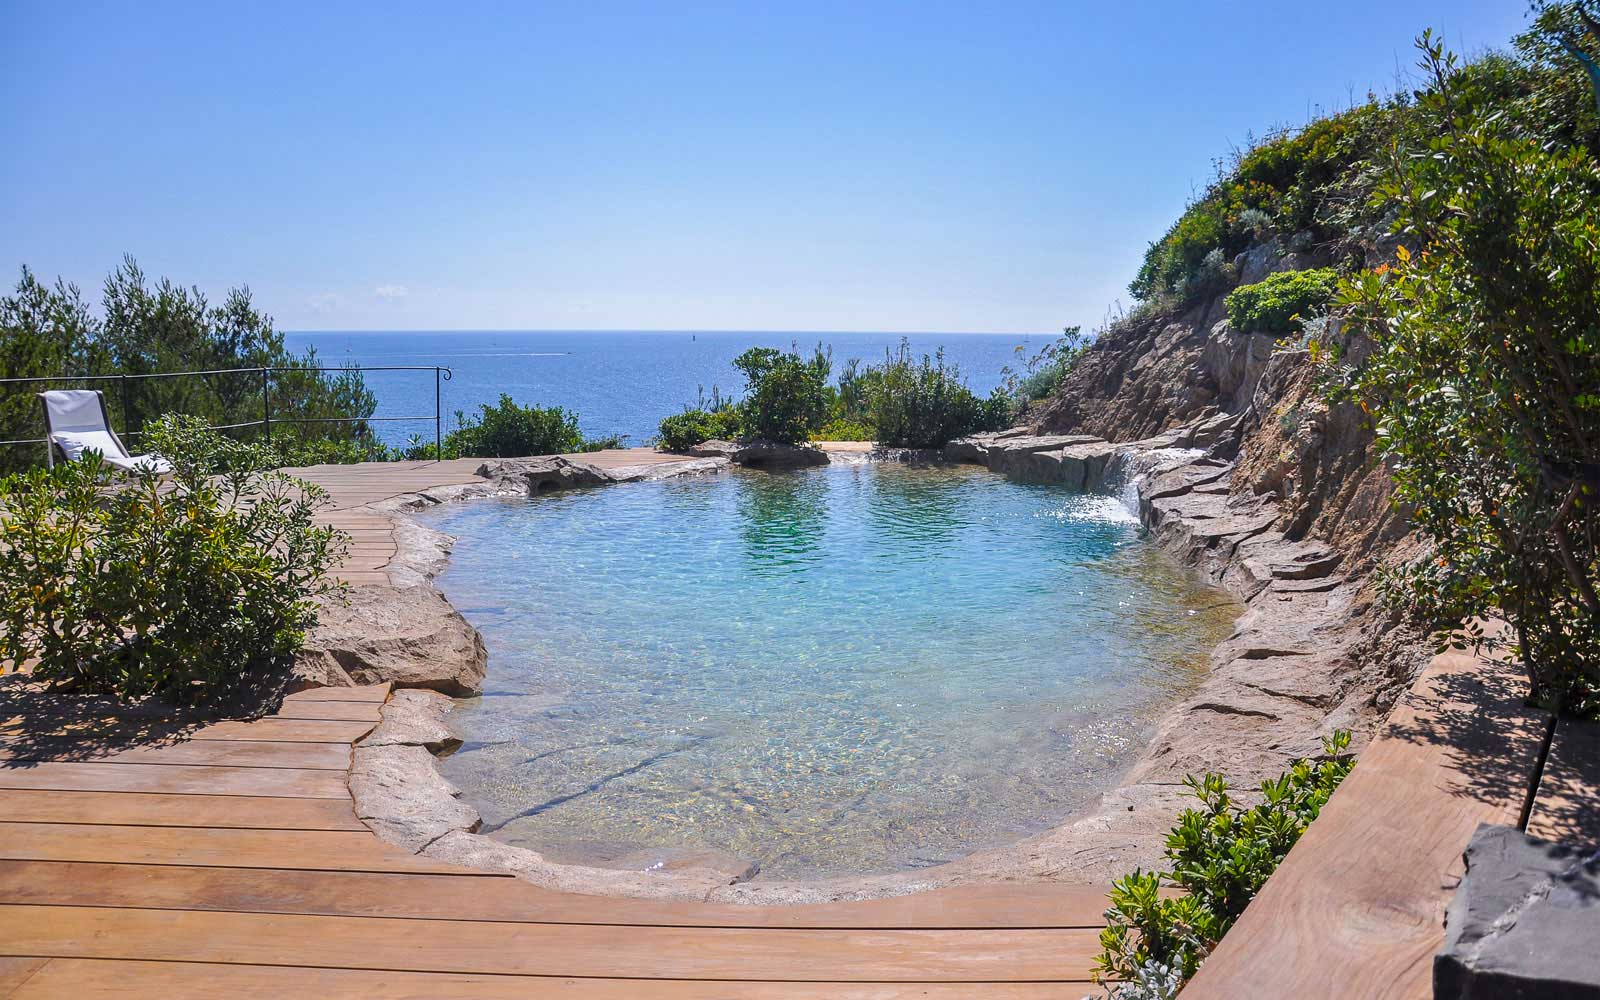 Naturalistic pool overlooking the sea